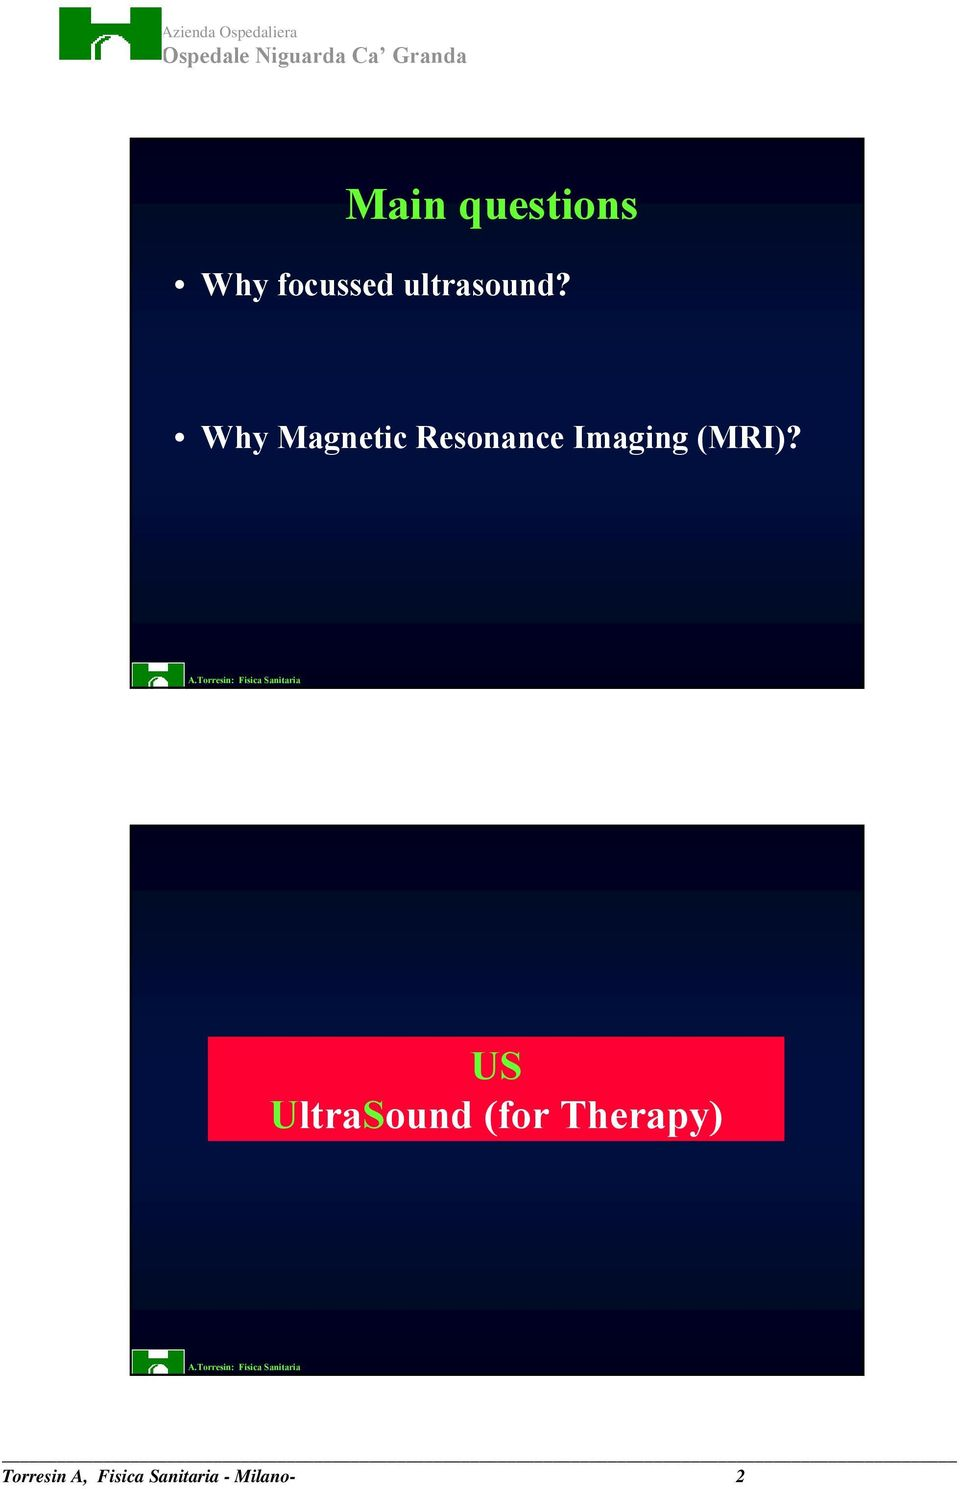 Why Magnetic Resonance Imaging (MRI)?